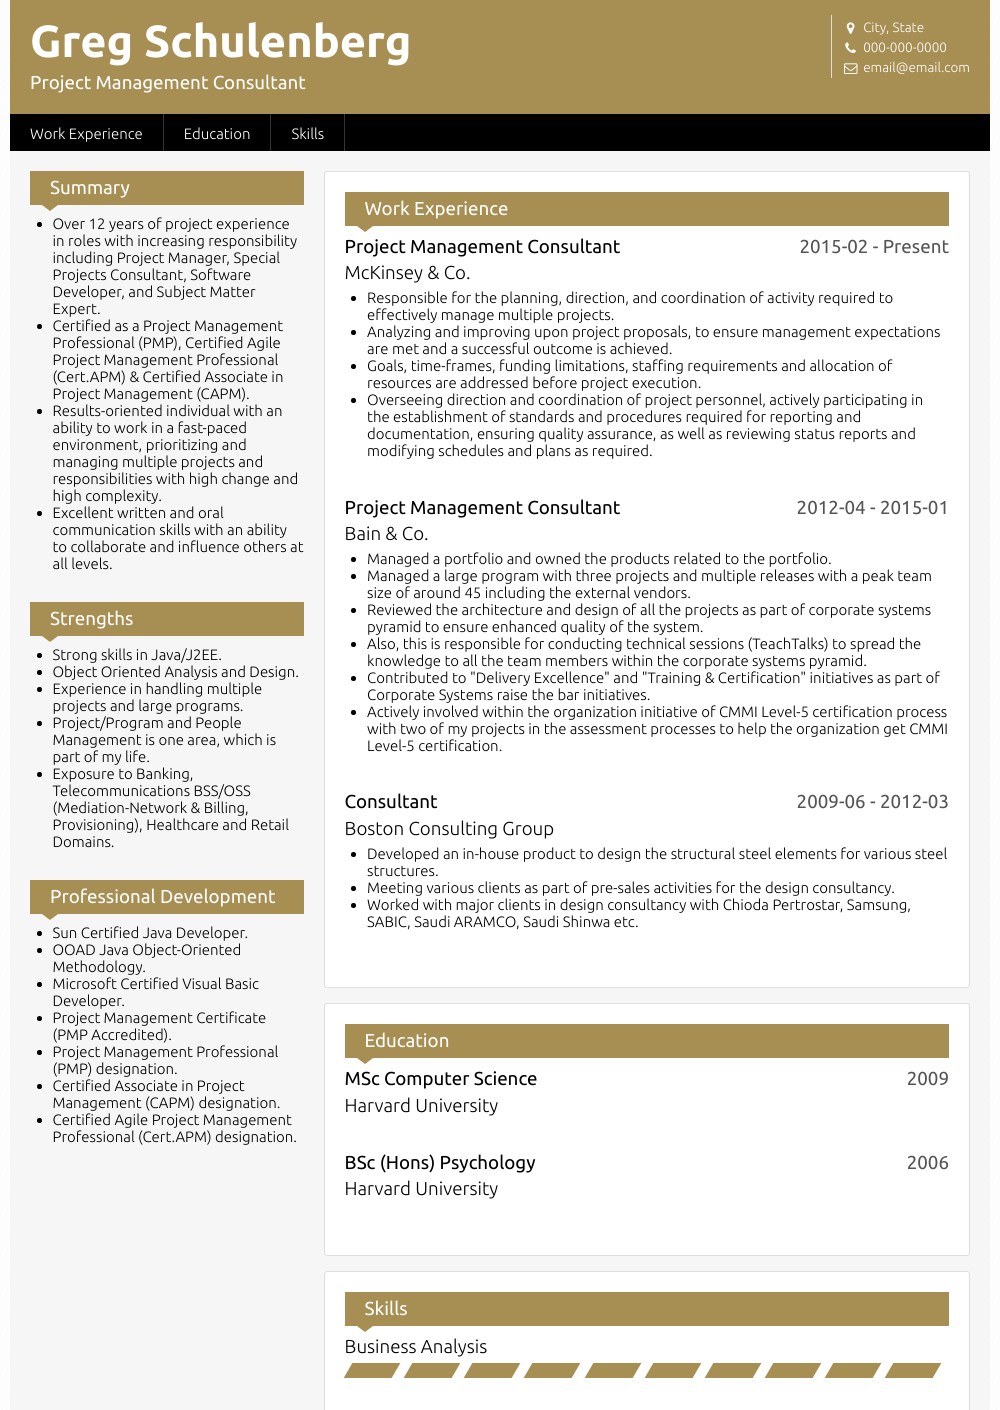 Management Consultant - Resume Samples & Templates | VisualCV